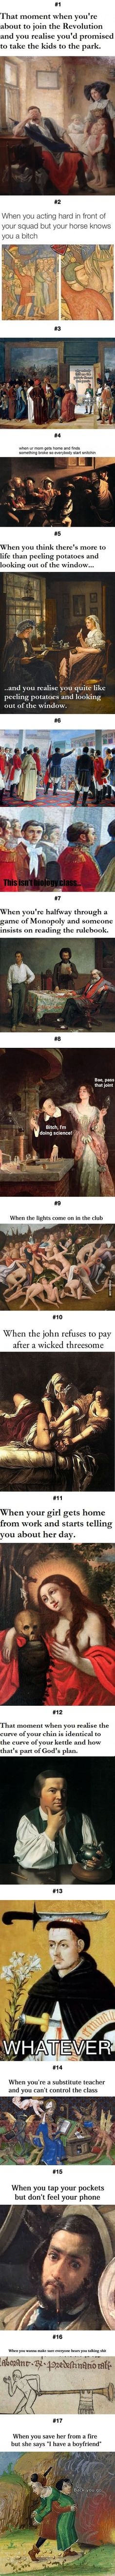 Classic paintings make much more sense with subtitles